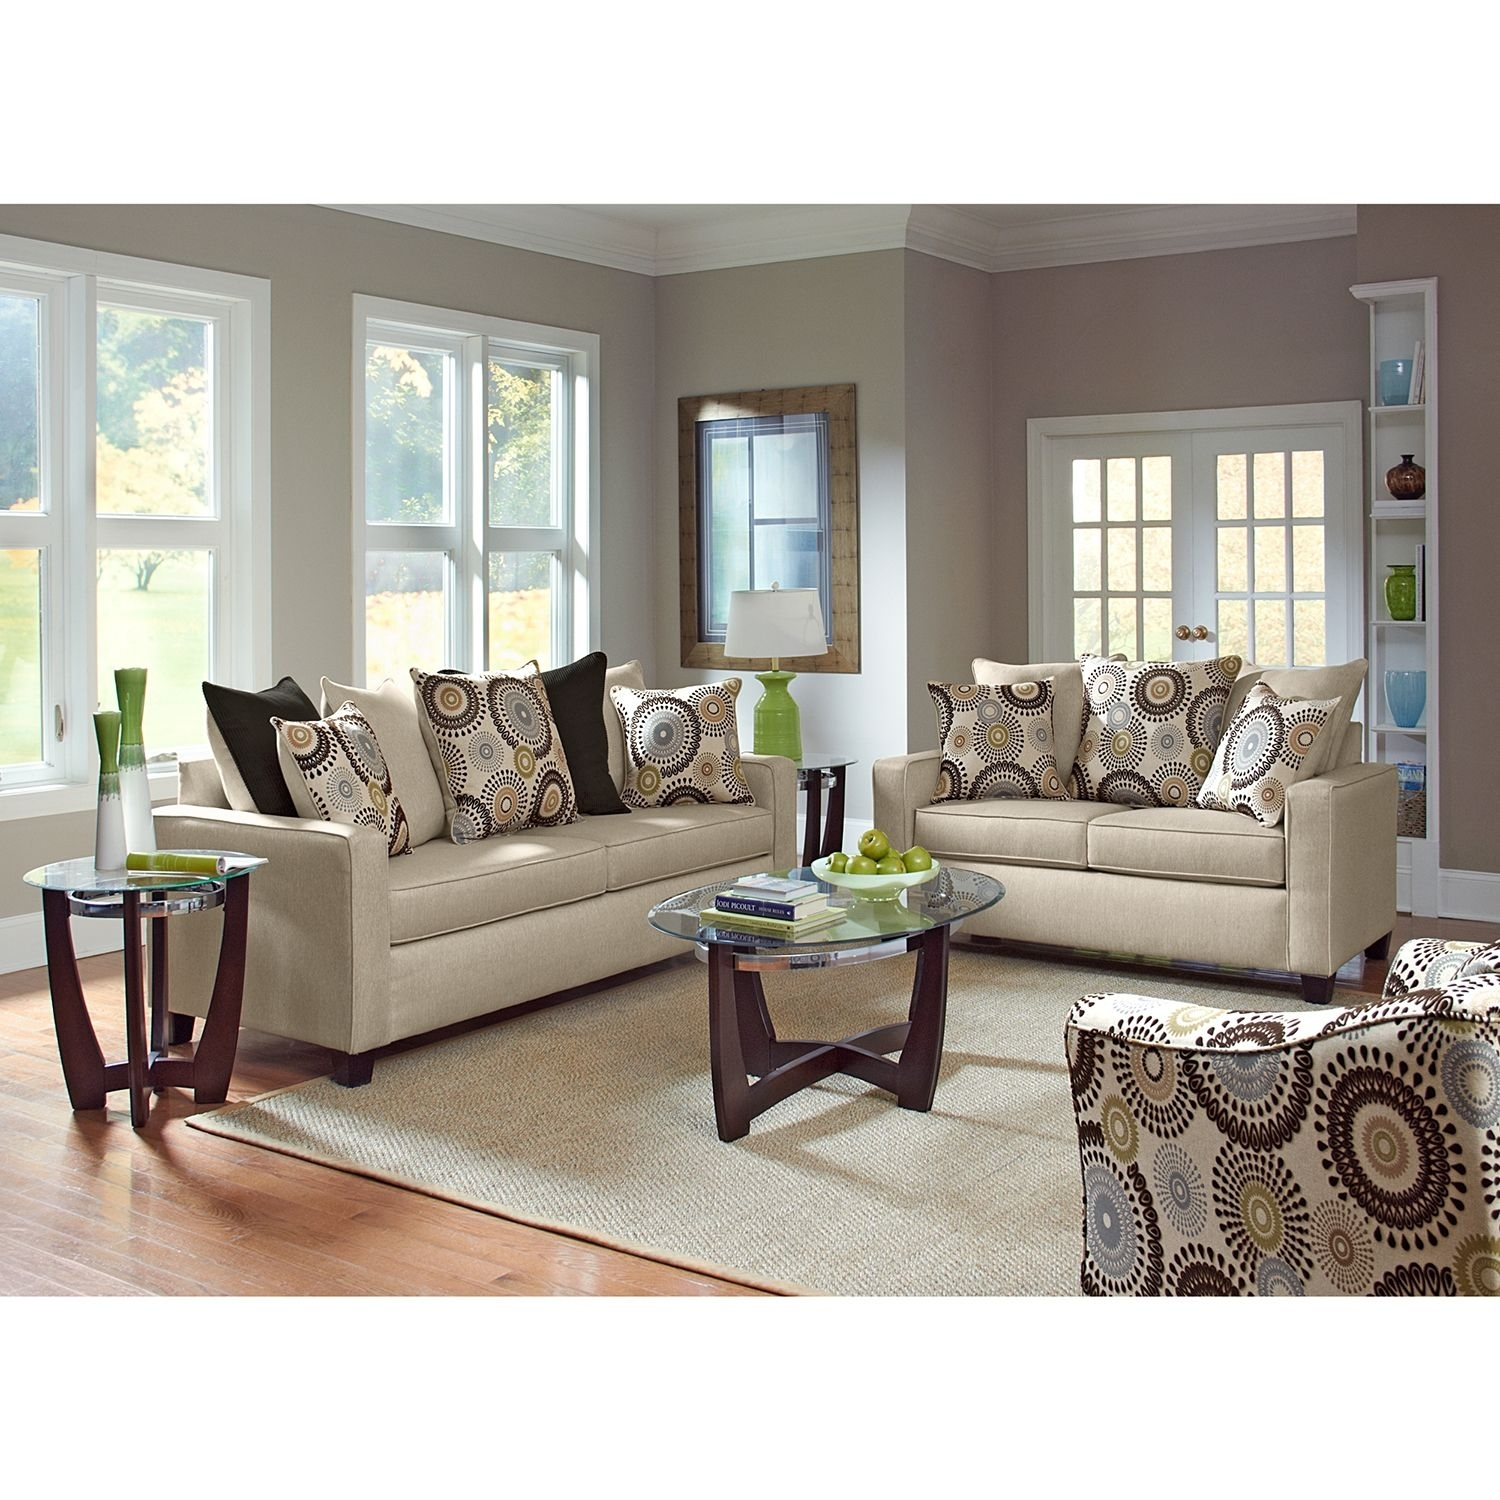 Stoked Upholstery 3 Pc. Living Room - Value City Furniture | Home with regard to Turdur 2 Piece Sectionals With Laf Loveseat (Image 26 of 30)